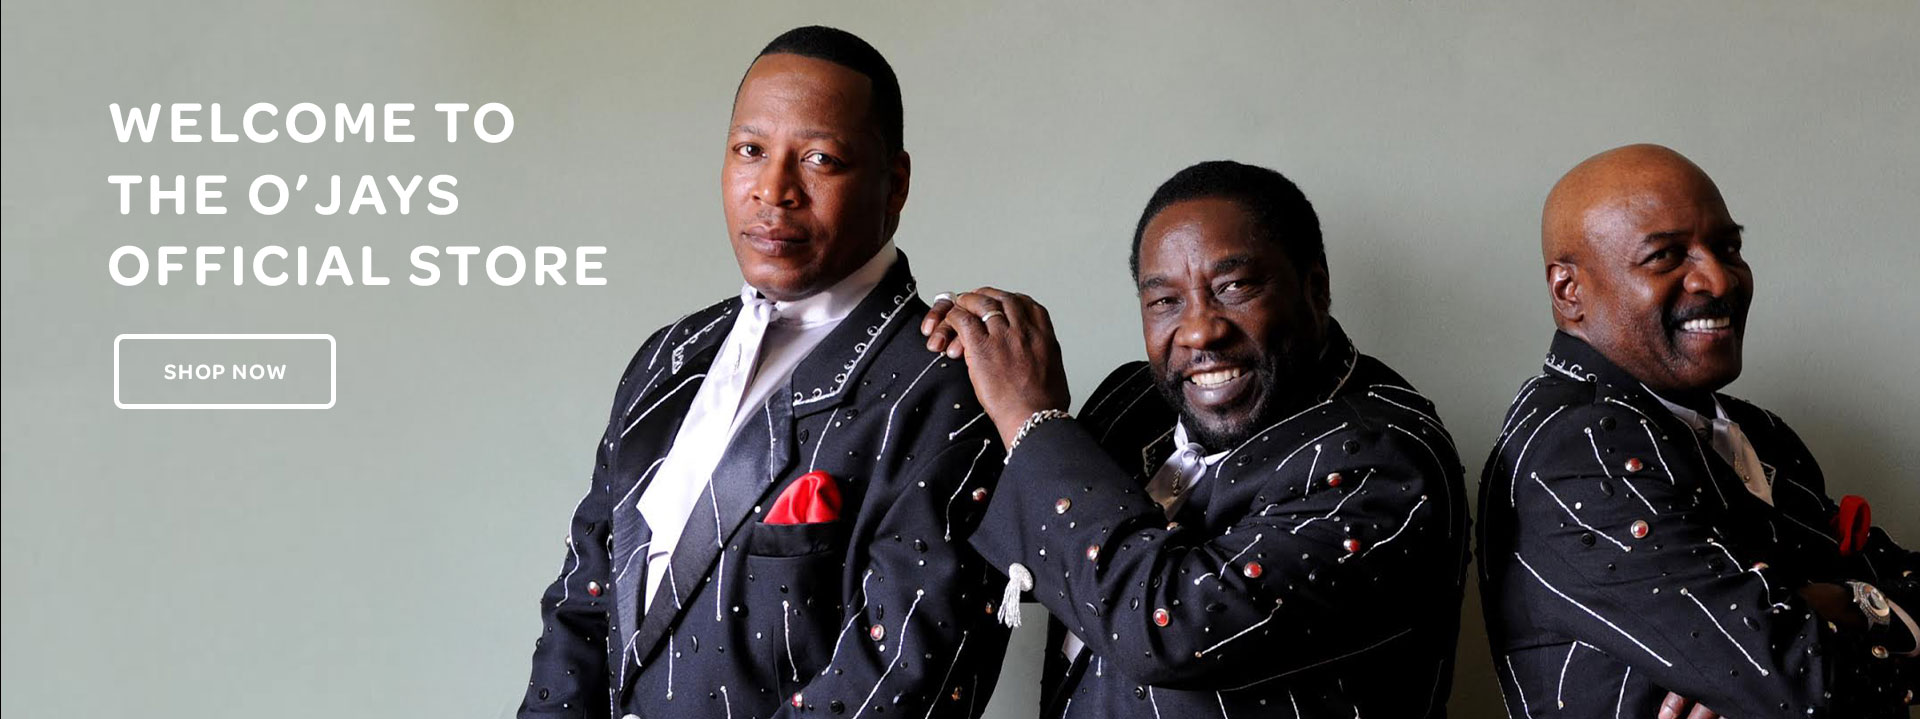 Welcome to The O'Jays official store | Shop now